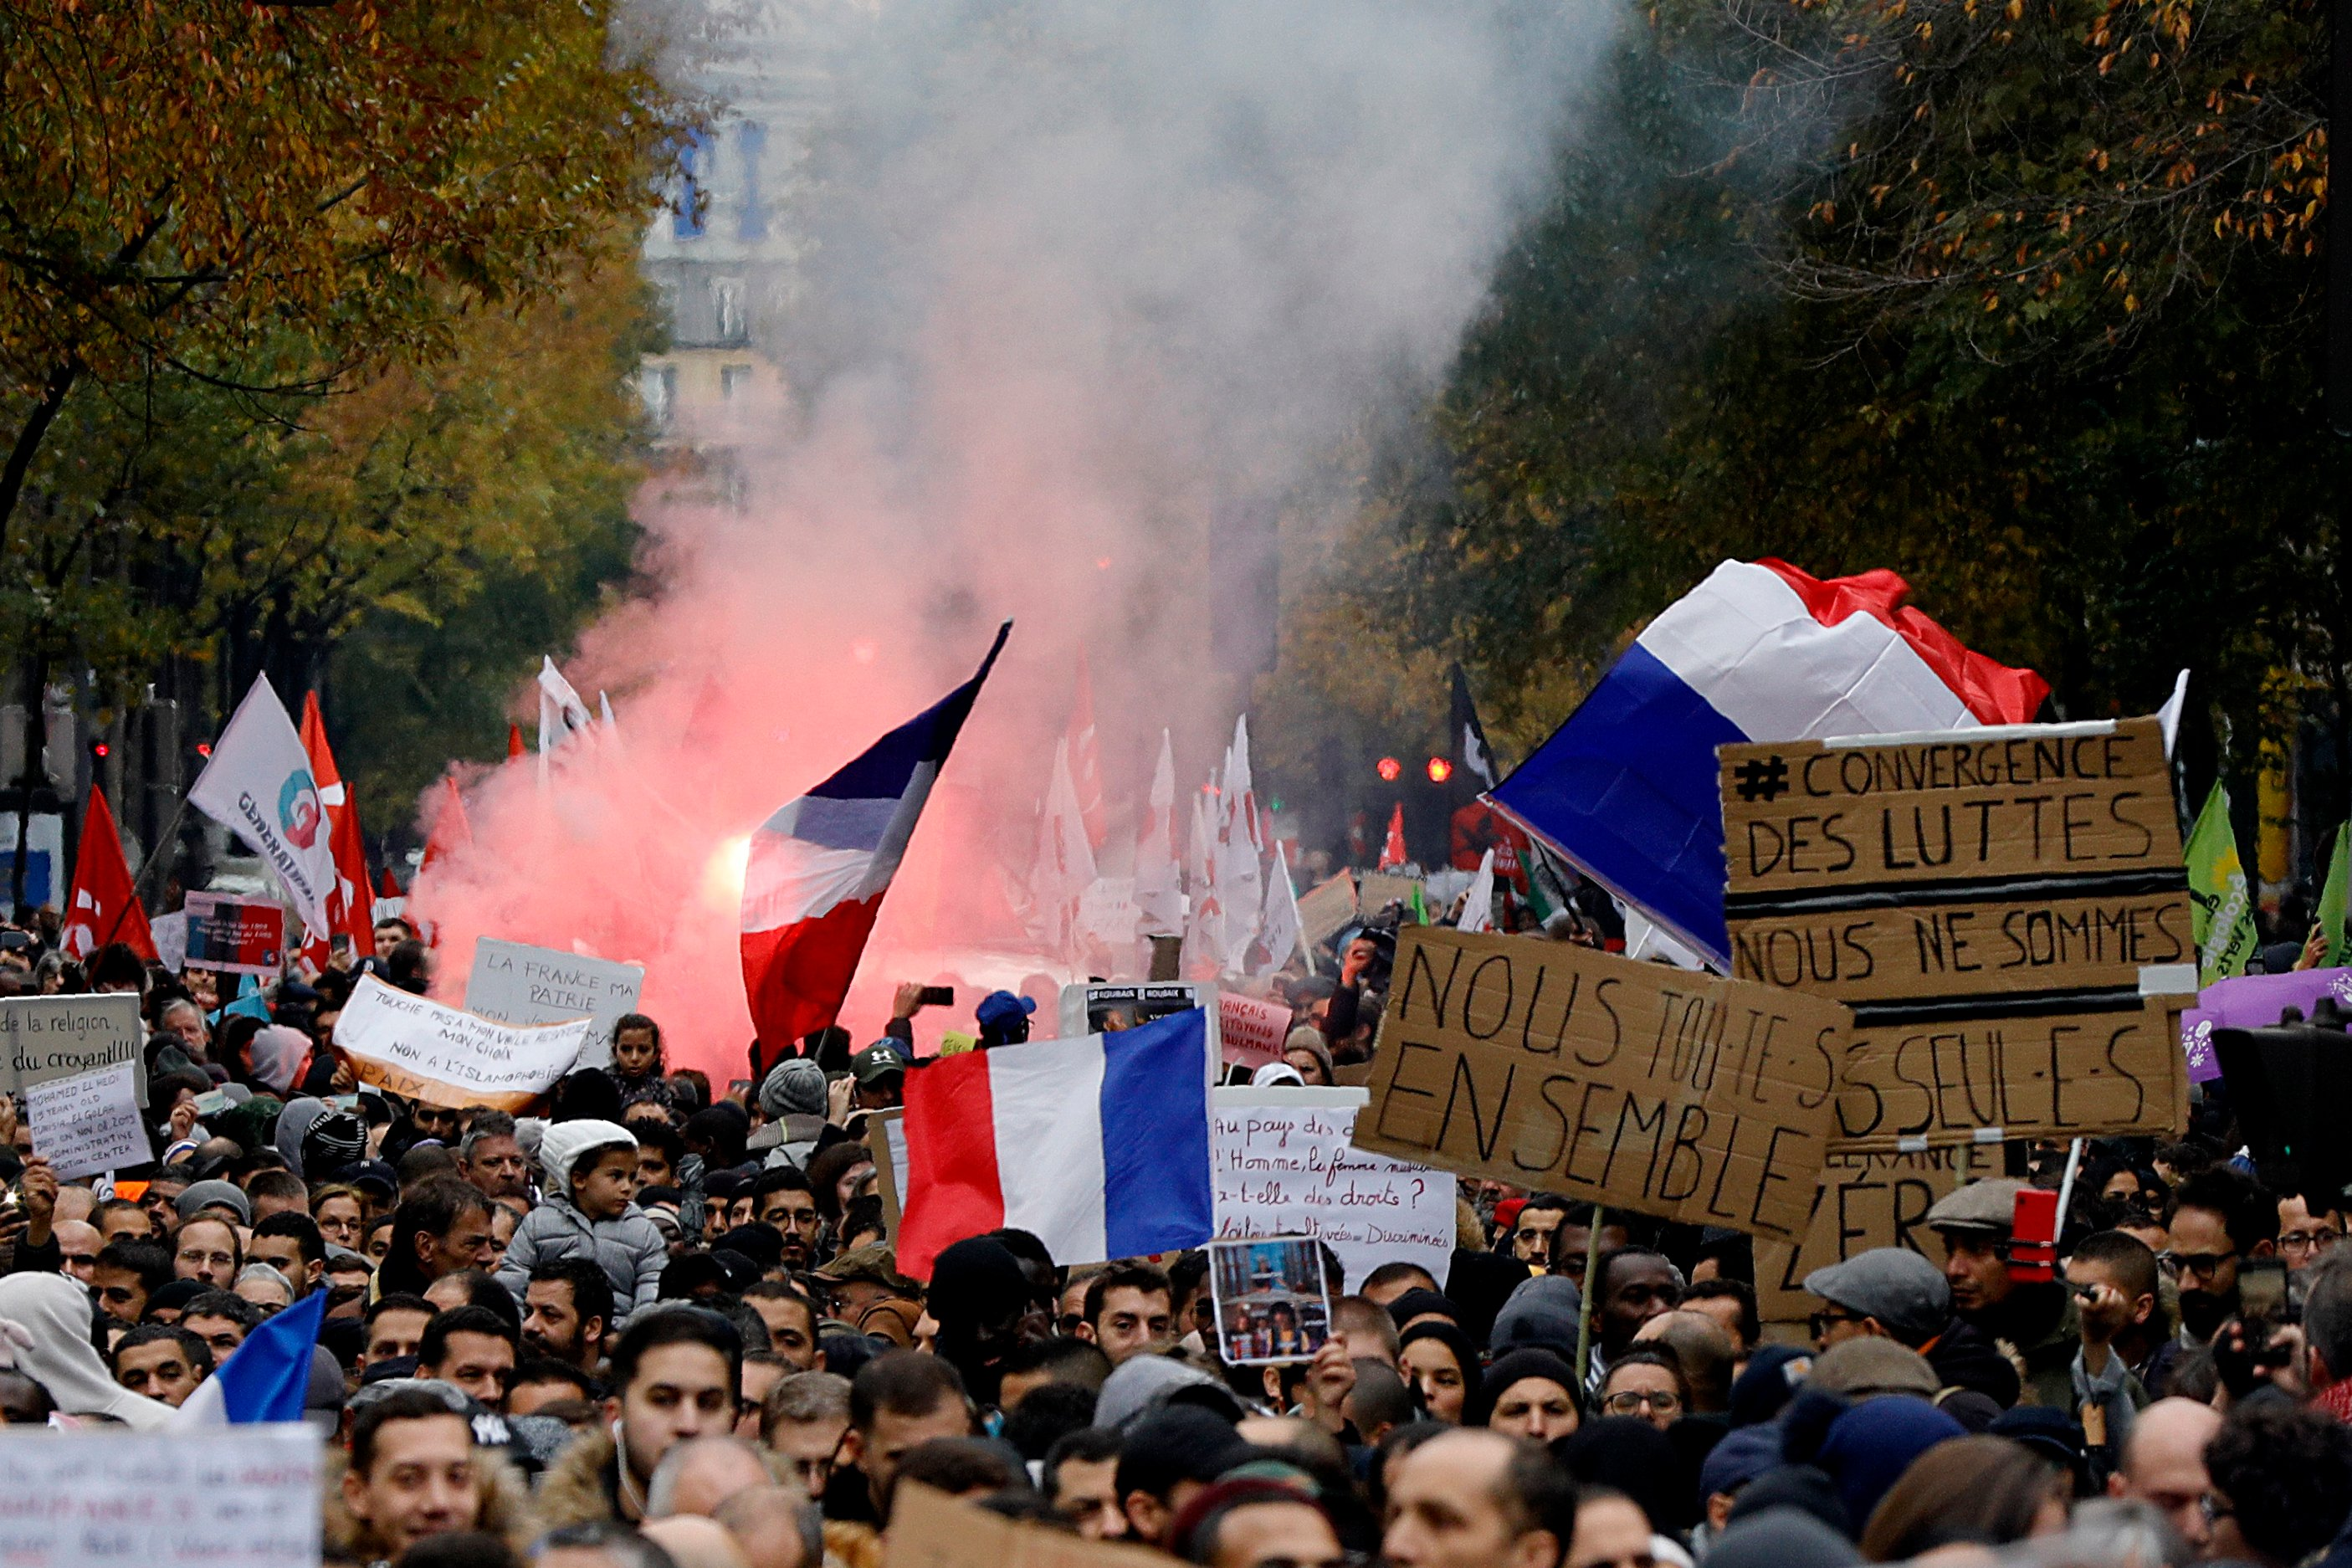 France is weaponising its 'republican values' as a means of exclusion